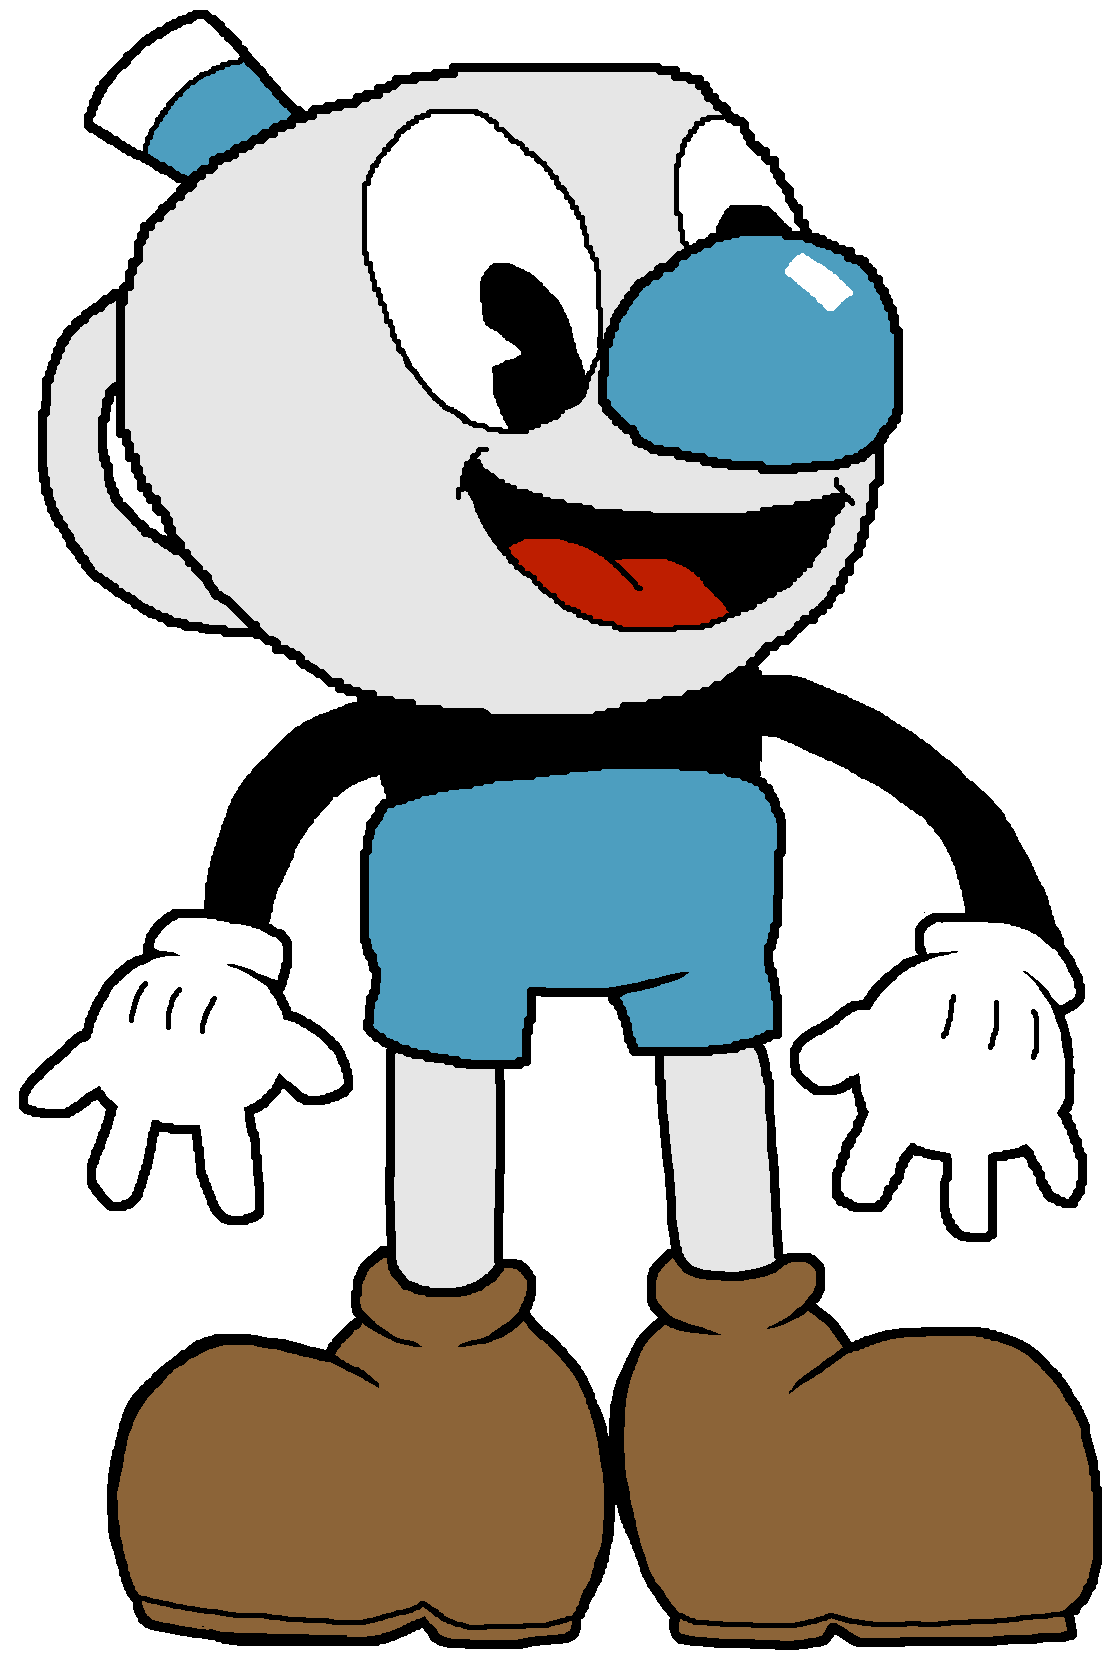 graphic transparent Mugman by fzone on. Bucket clipart dbq.